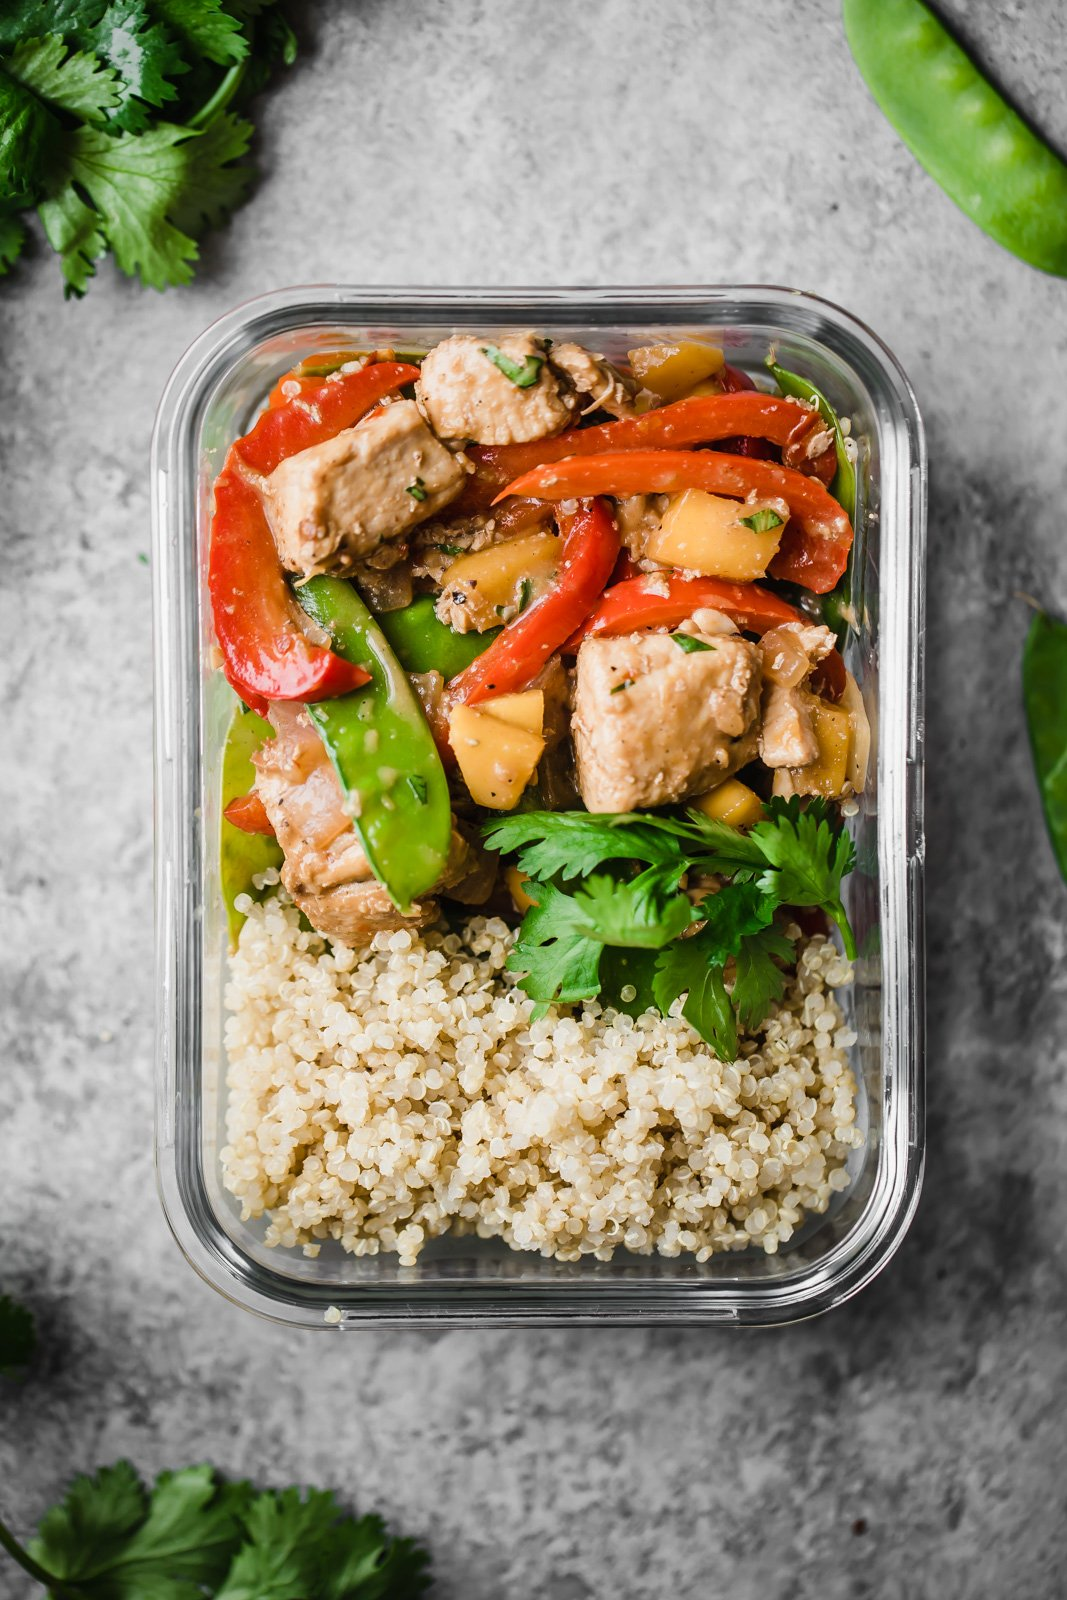 mango chicken stir fry with rice in a glass meal prep container